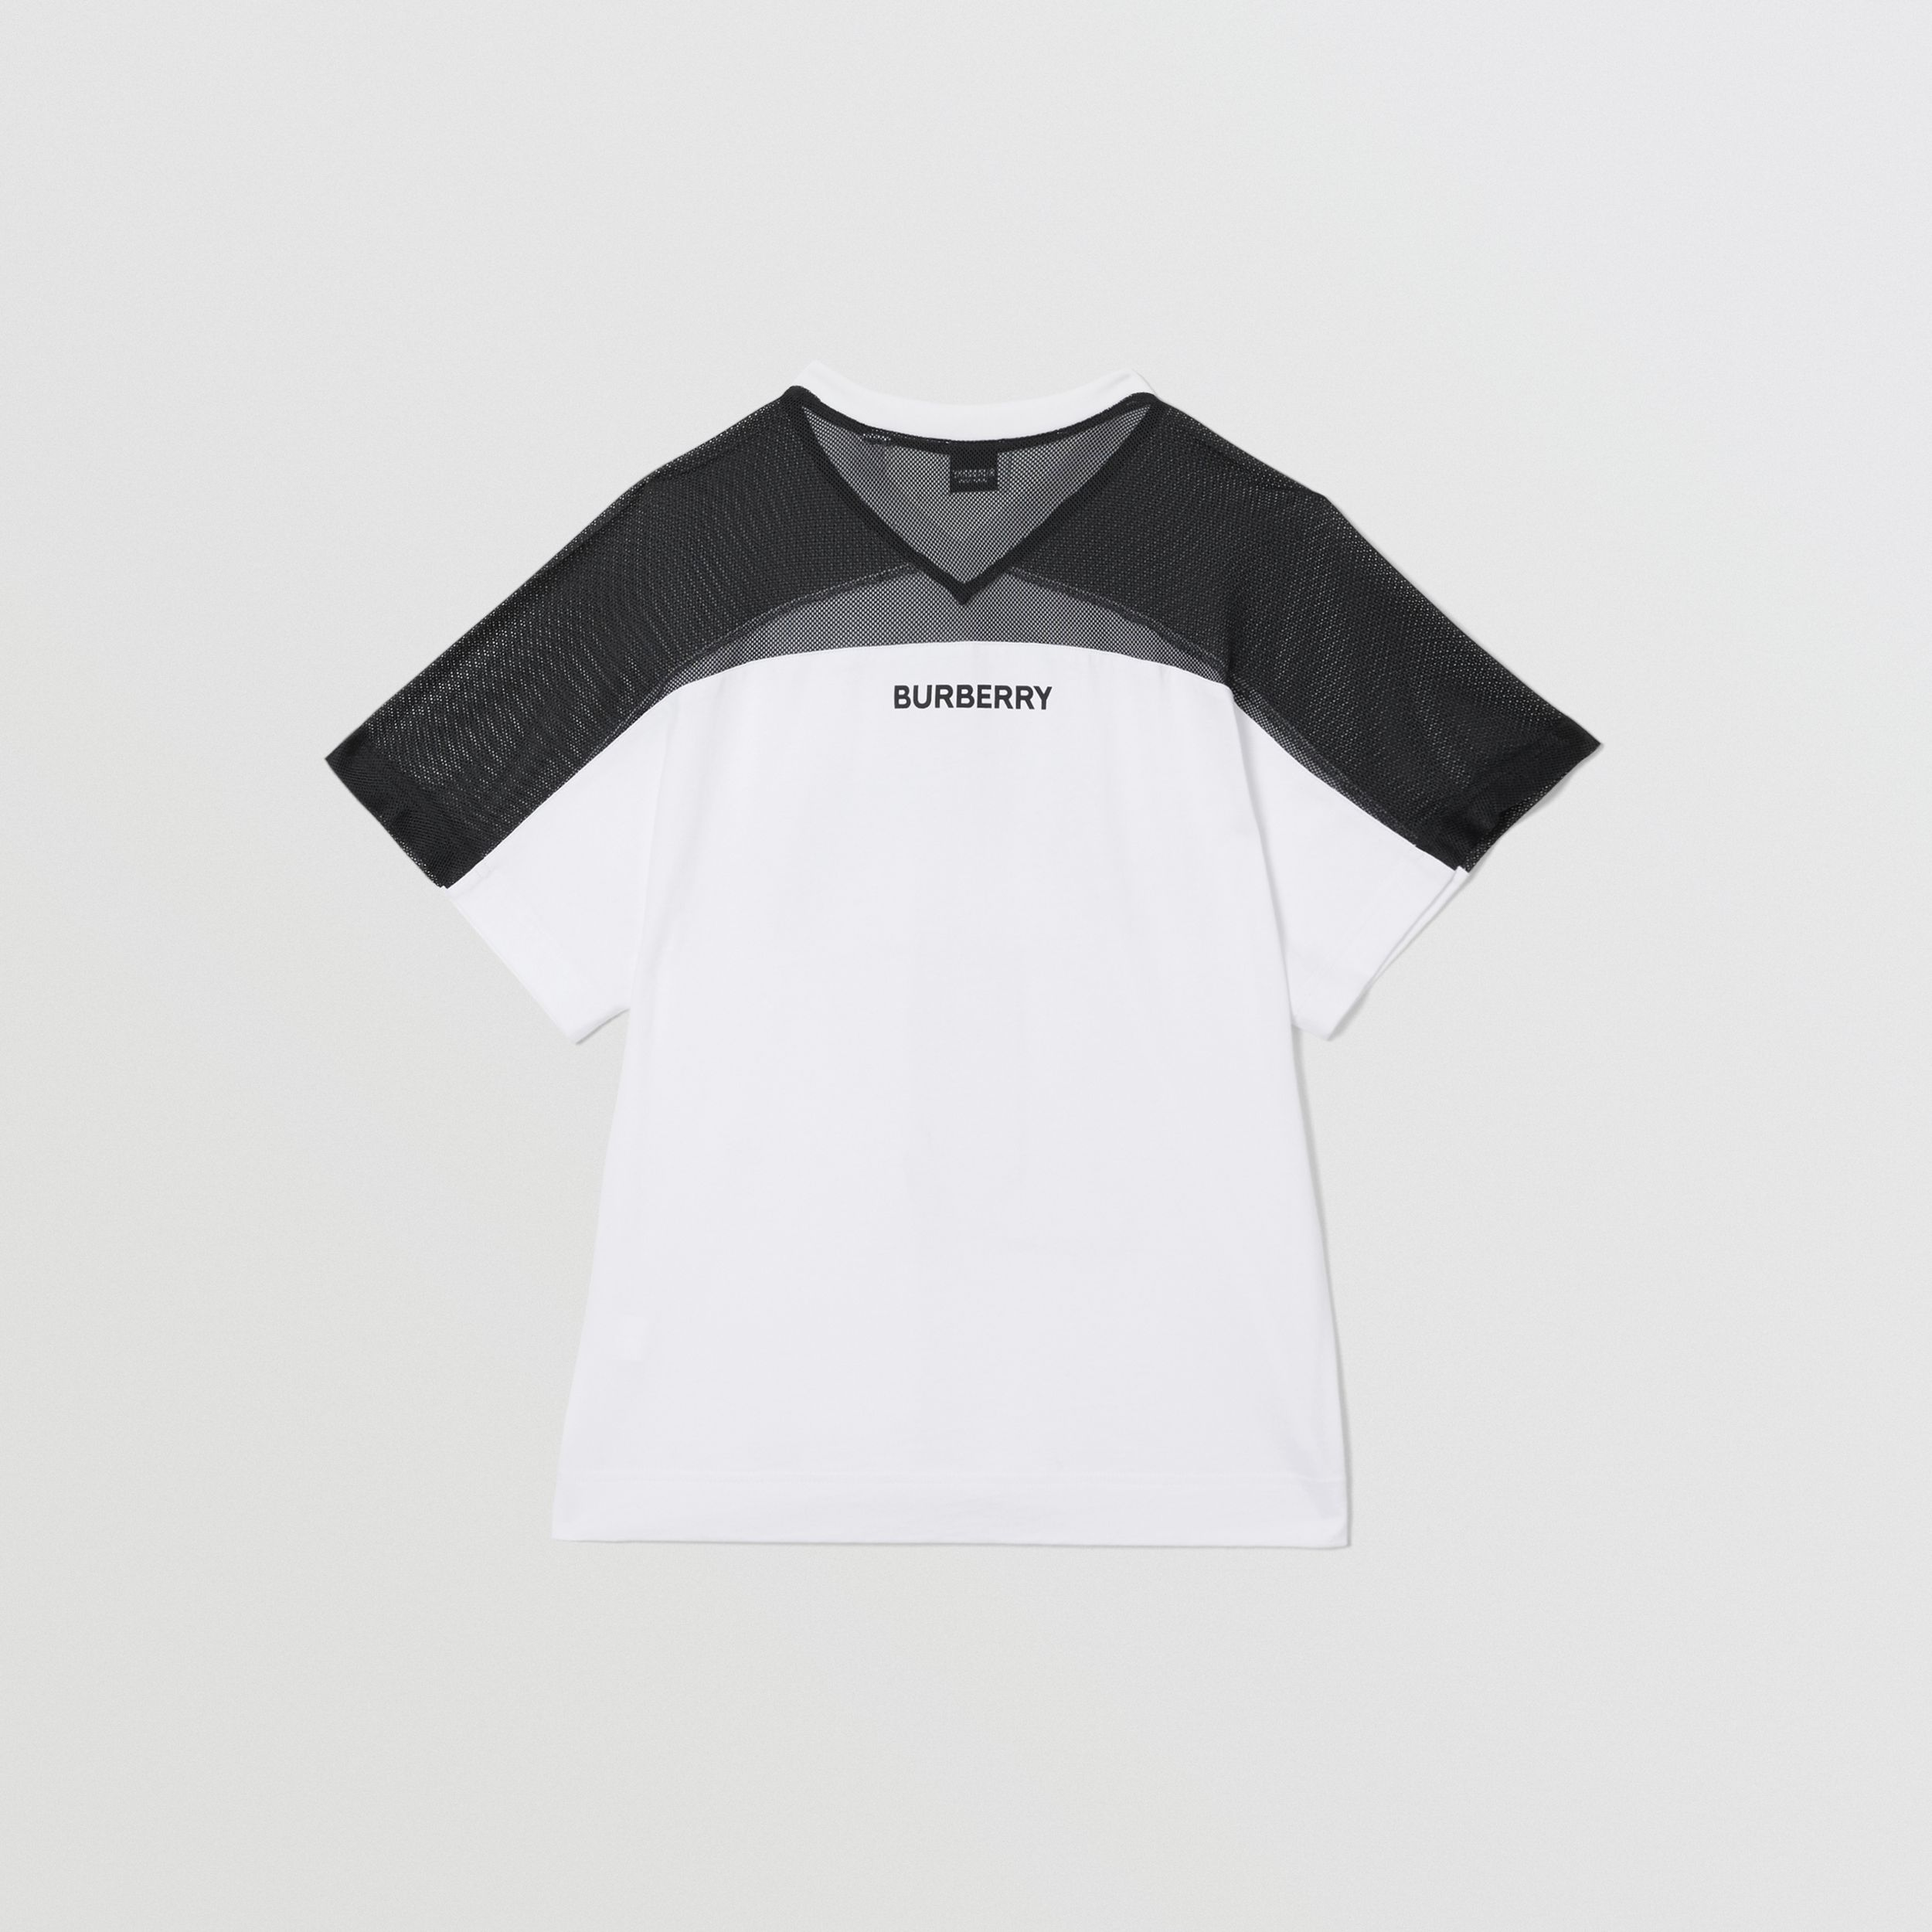 Mesh Panel Kingdom Print Cotton T-shirt in Black | Burberry - 4